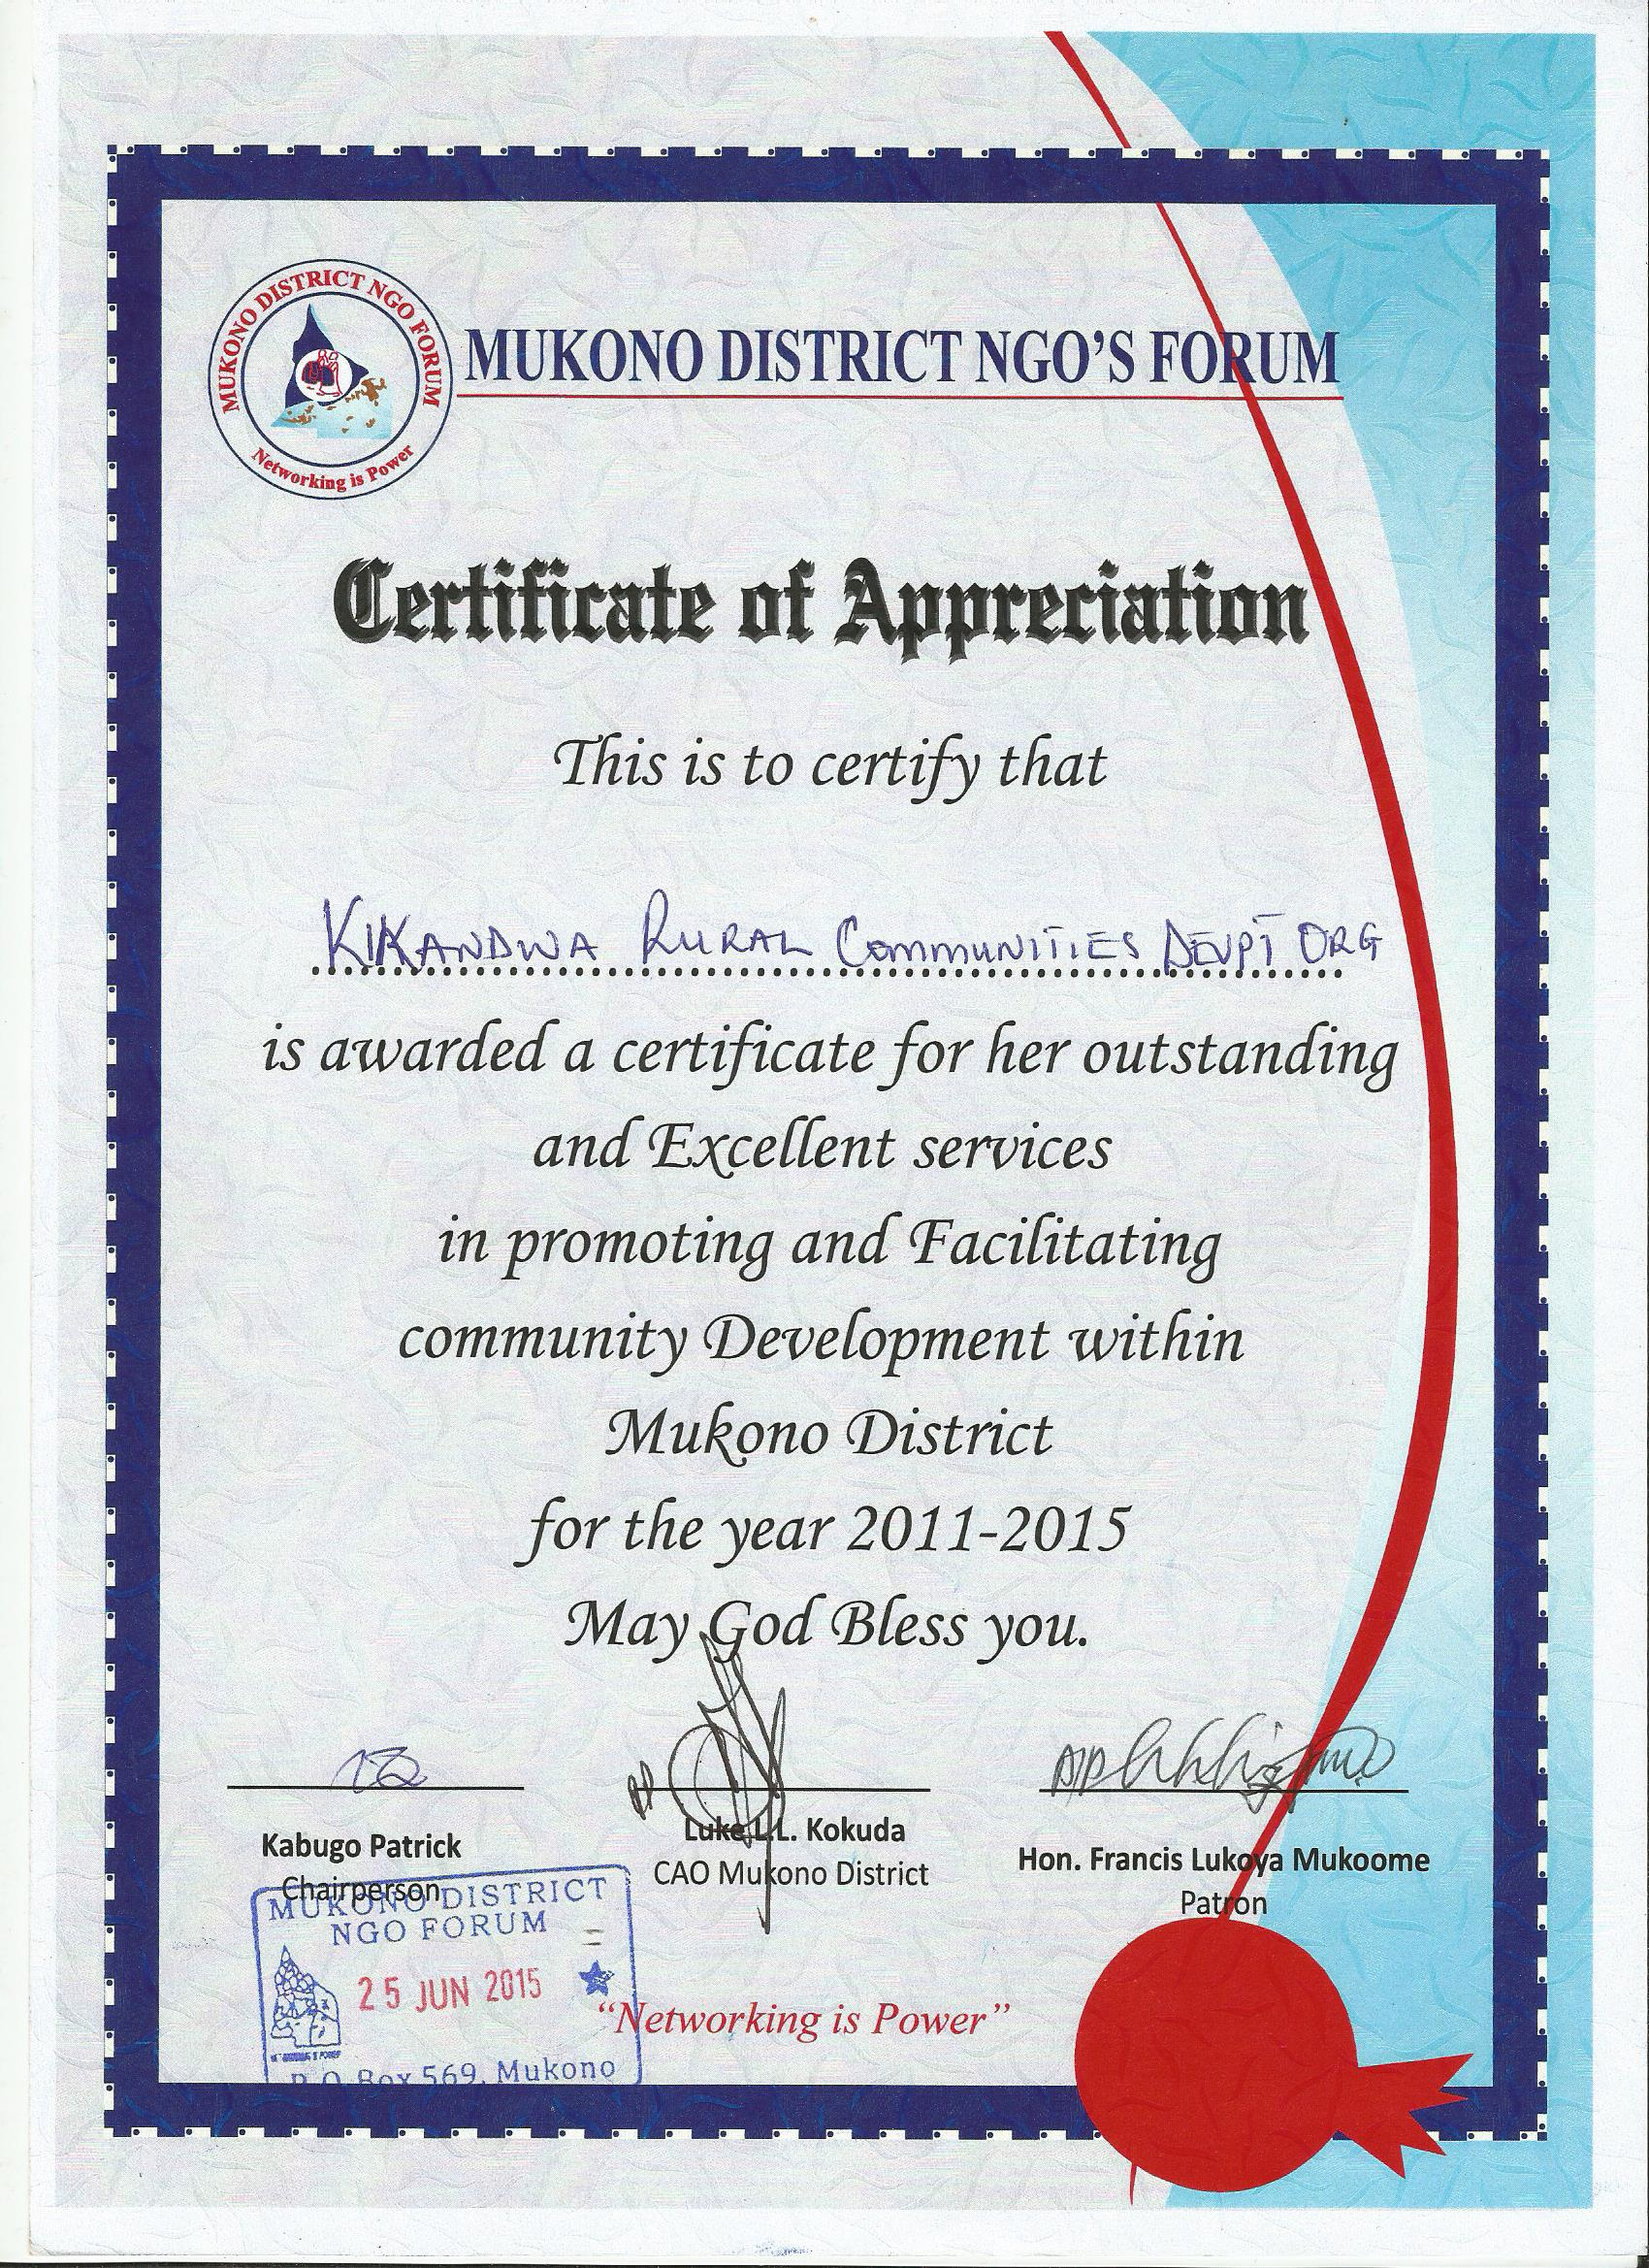 Human rights rural africa facts certificate of appreciationkirucodo xflitez Image collections